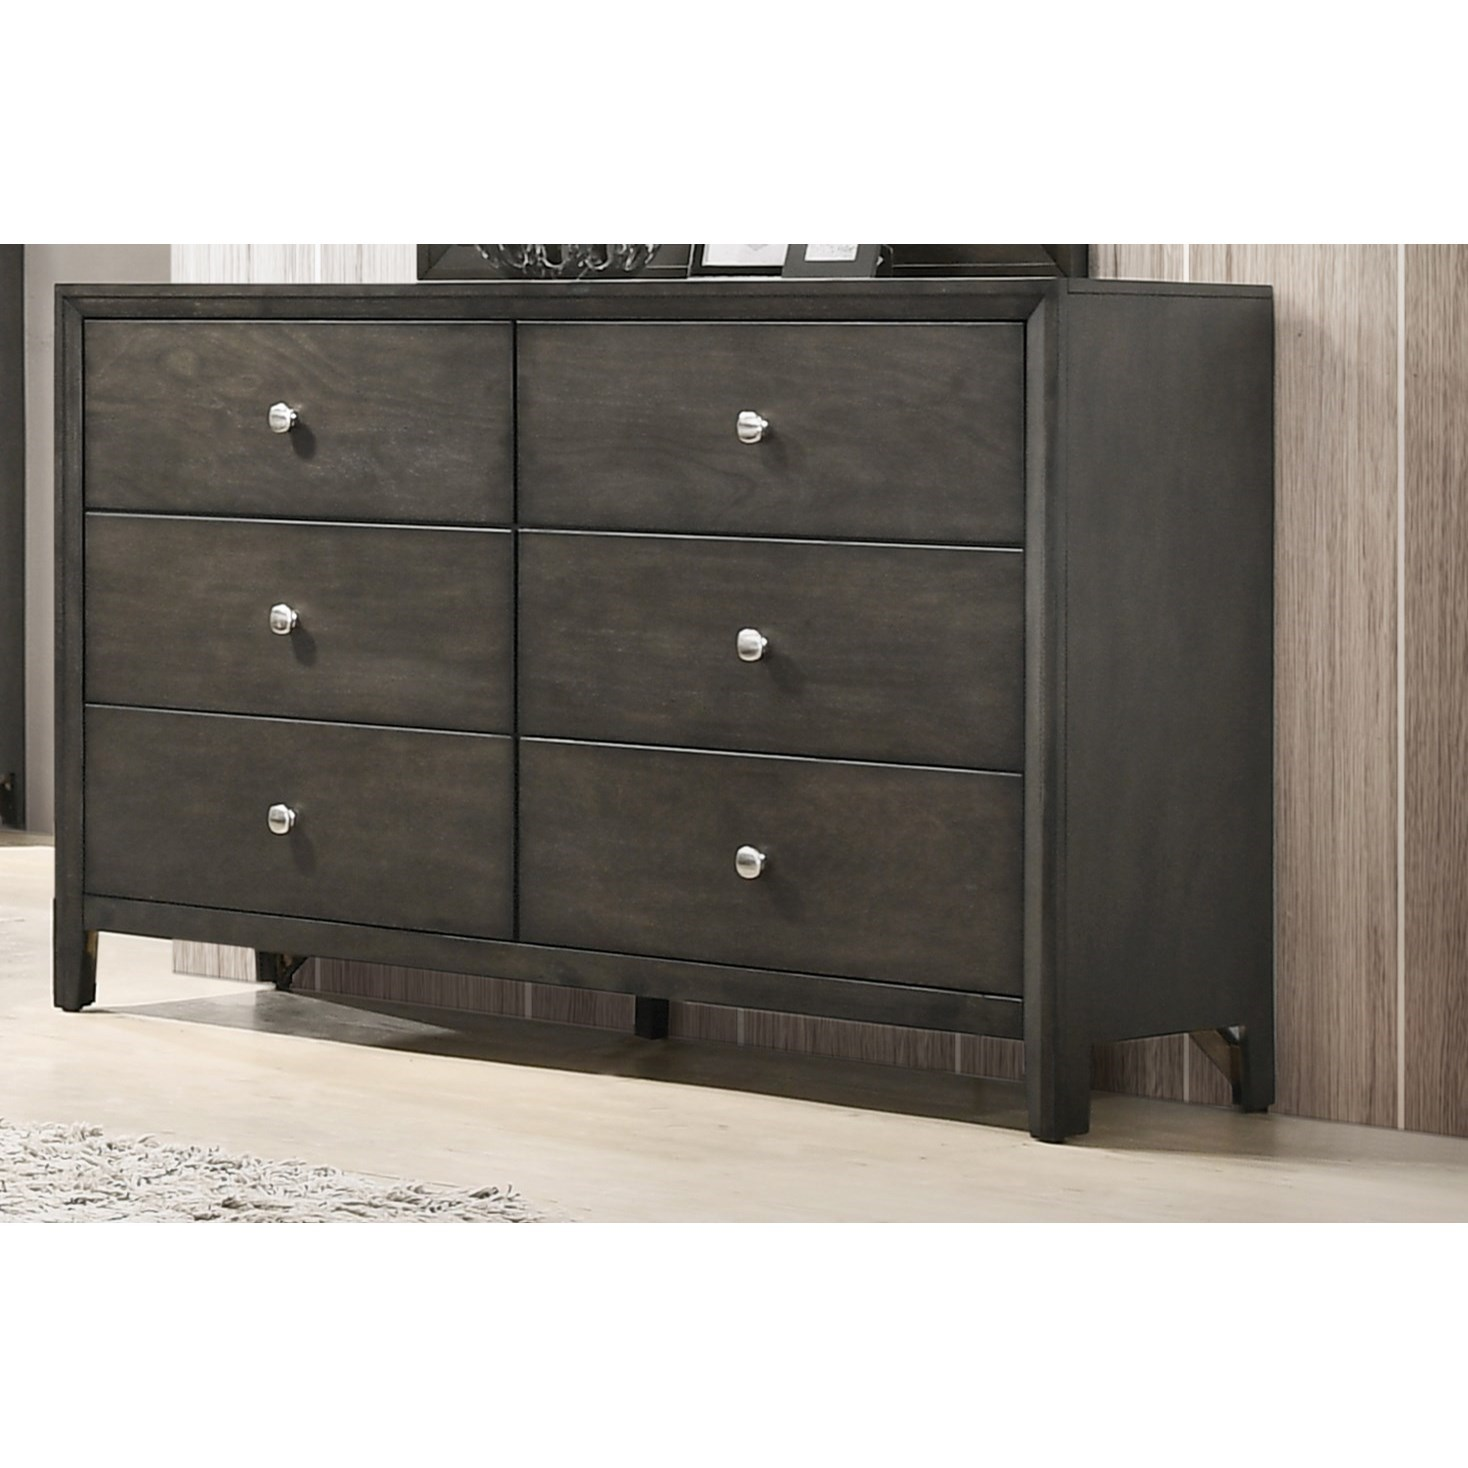 Grant Dresser by United Furniture Industries at Dream Home Interiors